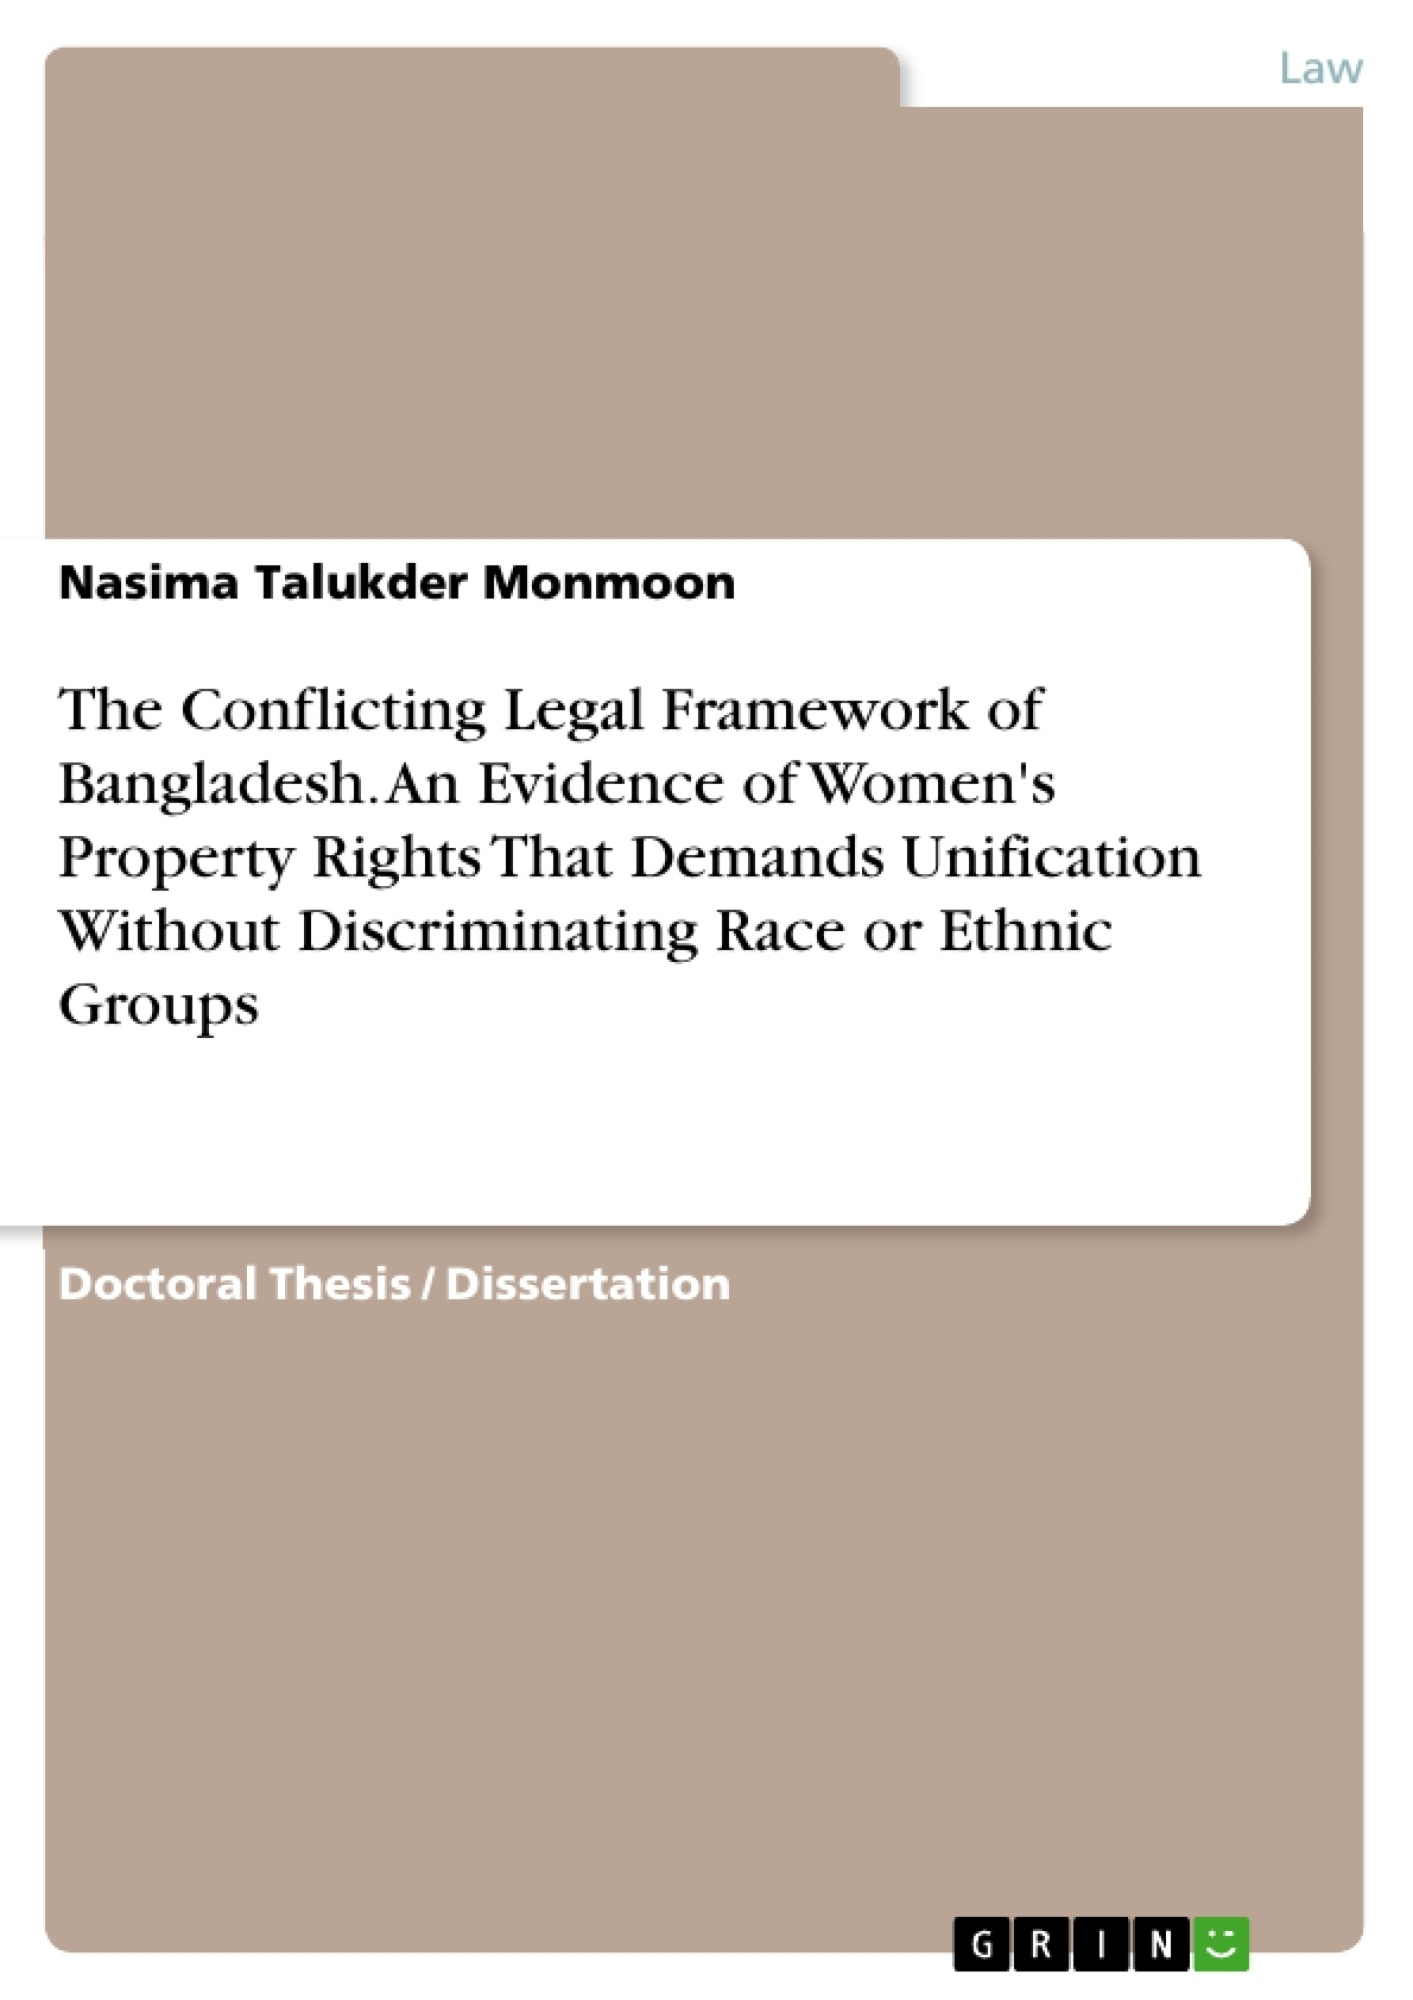 Title: The Conflicting Legal Framework of Bangladesh. An Evidence of Women's Property Rights That Demands Unification Without Discriminating Race or Ethnic Groups